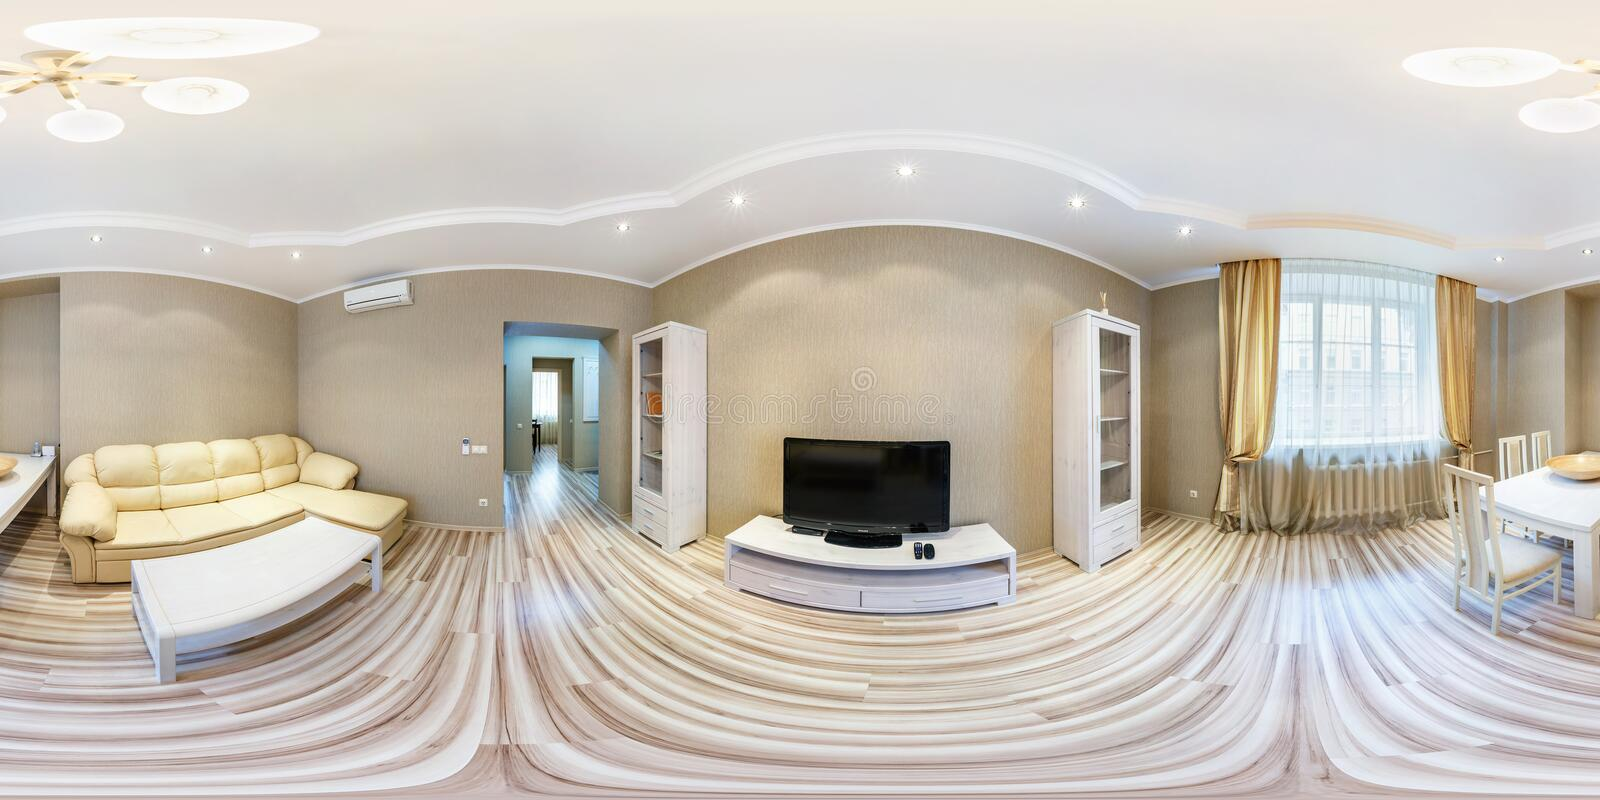 MINSK, BELARUS - MARCH 21, 2012: full 360 degree seamless panorama in equirectangular spherical equidistant projection. Panorama. In interior of guestroom hall stock images